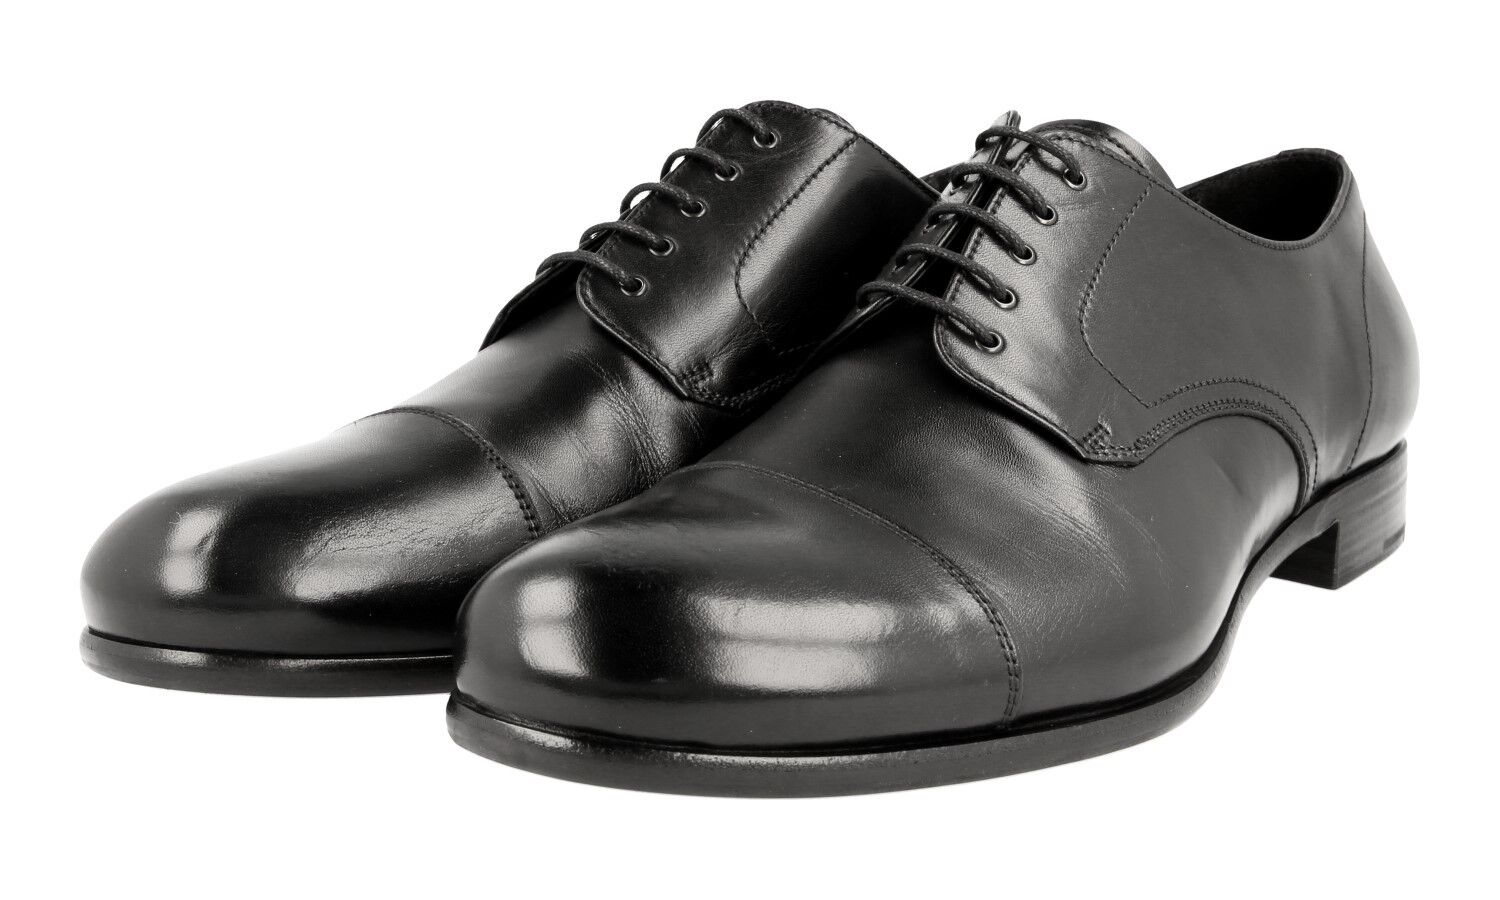 AUTH PRADA CAP TOE DERBY BUSINESS scarpe 2EB134 nero NEW US 7.5 EU 40,5 41